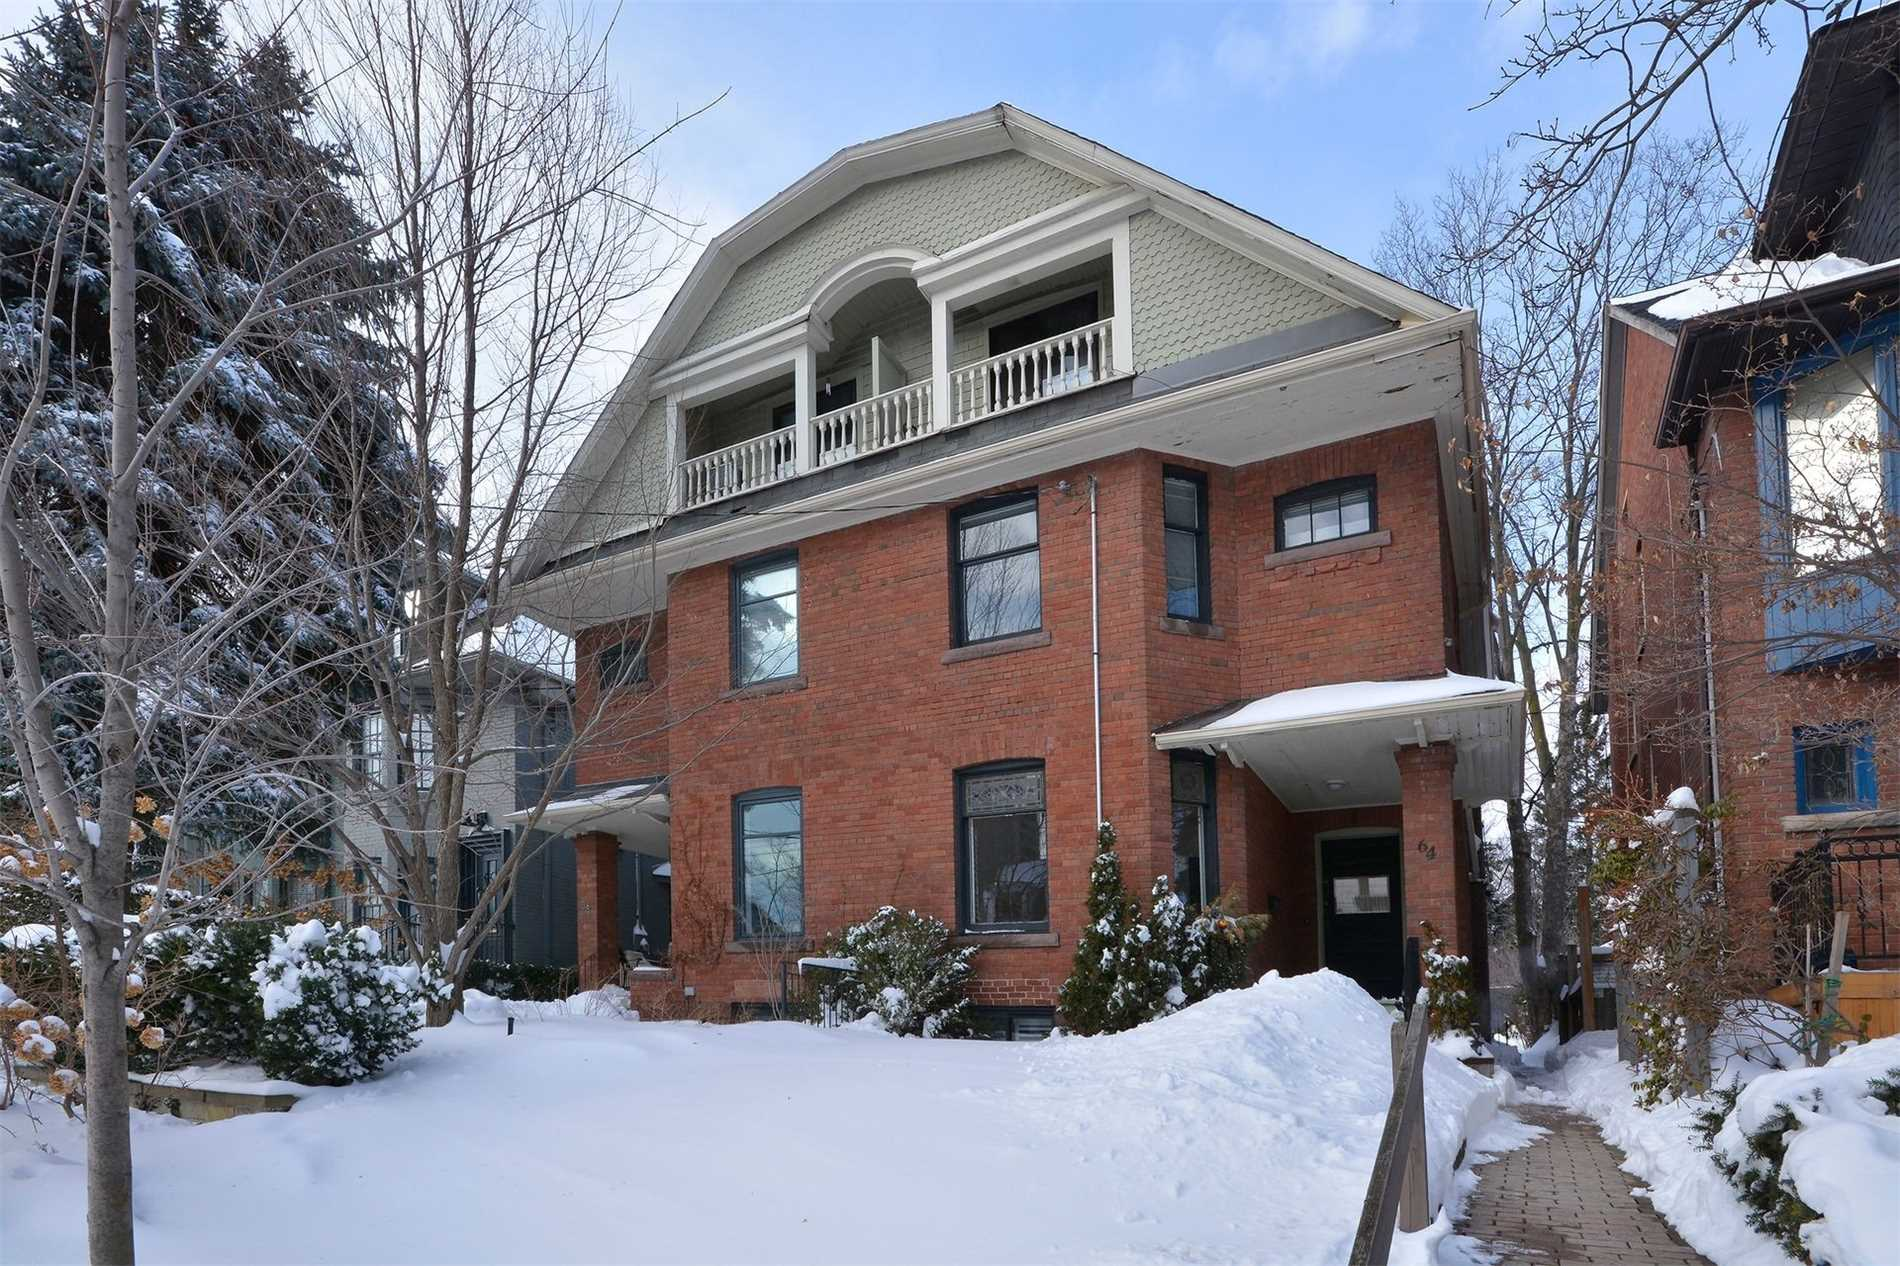 1st Time Offered In 48 Years!! Wide 3-Sty.Semi On A 25 X 150 Ft. Deep Lot. Authentic Traditional Charm, There Are Currently 3 Units W/ Approx.2795 Sq.Ft.+ 1082 Sq.Ft. In Basement.10' Ceilings On Main Floor. Lane Parking For Up To 3 Cars. Great Opportunity To Buy In This Sought-After Location. Leave As A Rental Or Renovate Into Your Dream Home. Main Floor Unit Owner Occupied/2nd Flr Unit $1199.56/Mo-To-Mo/3rd Flr Unit $1107/Mo-To-Mo